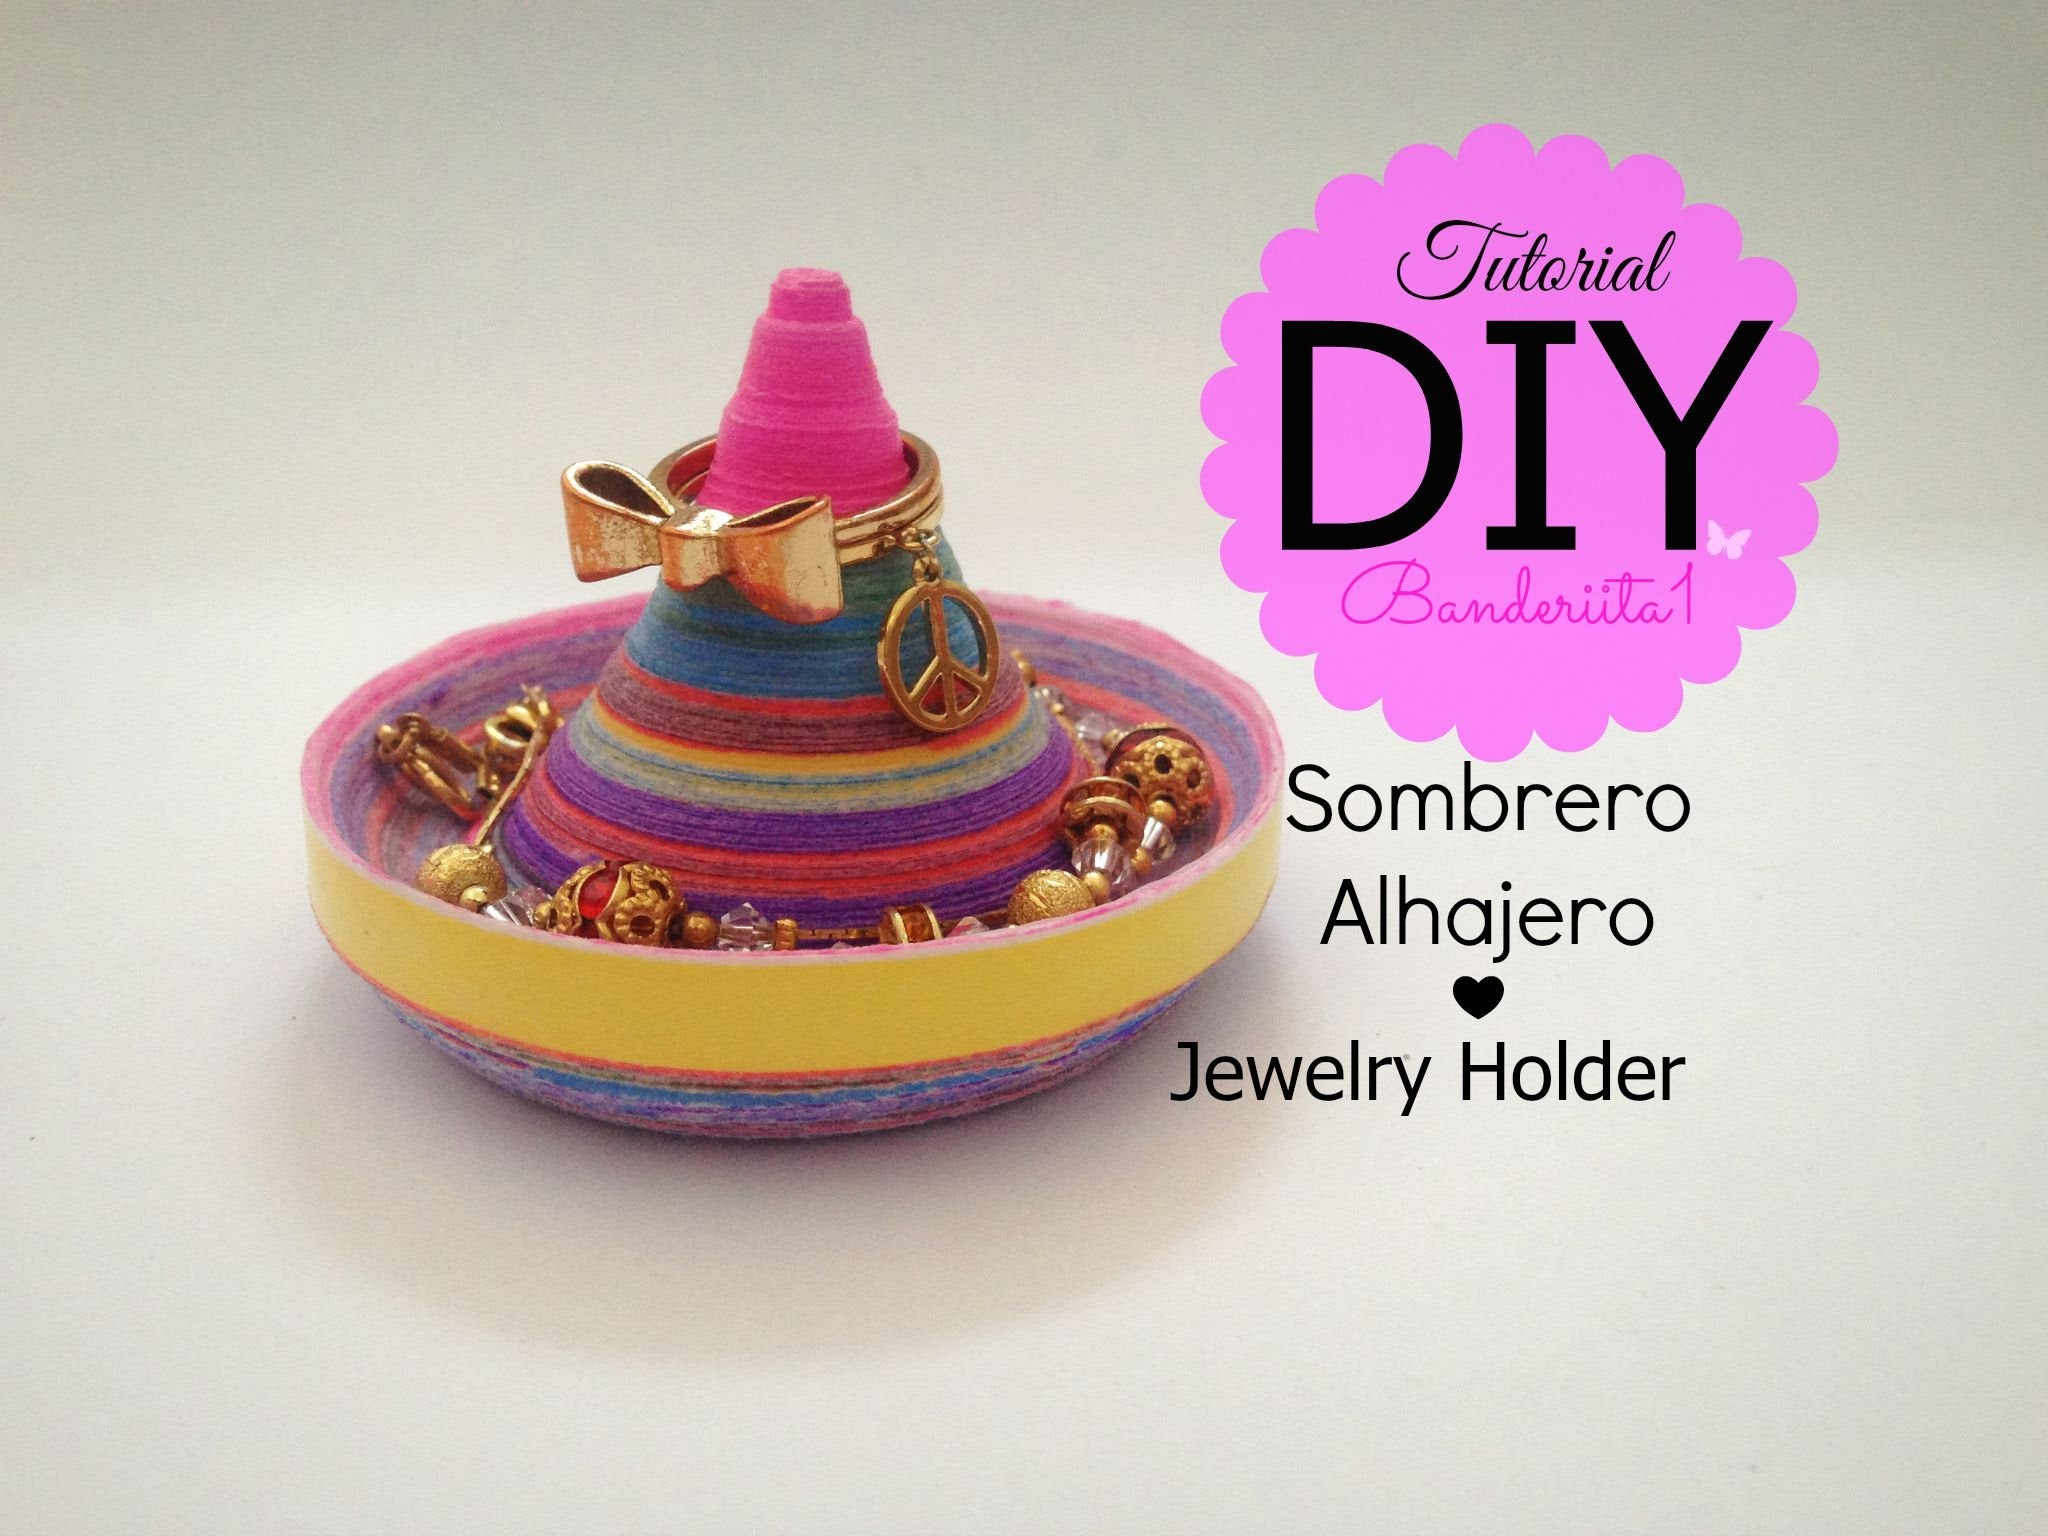 Sombrero Alhajero Tutorial DIY-Jewelry holder How to DIY